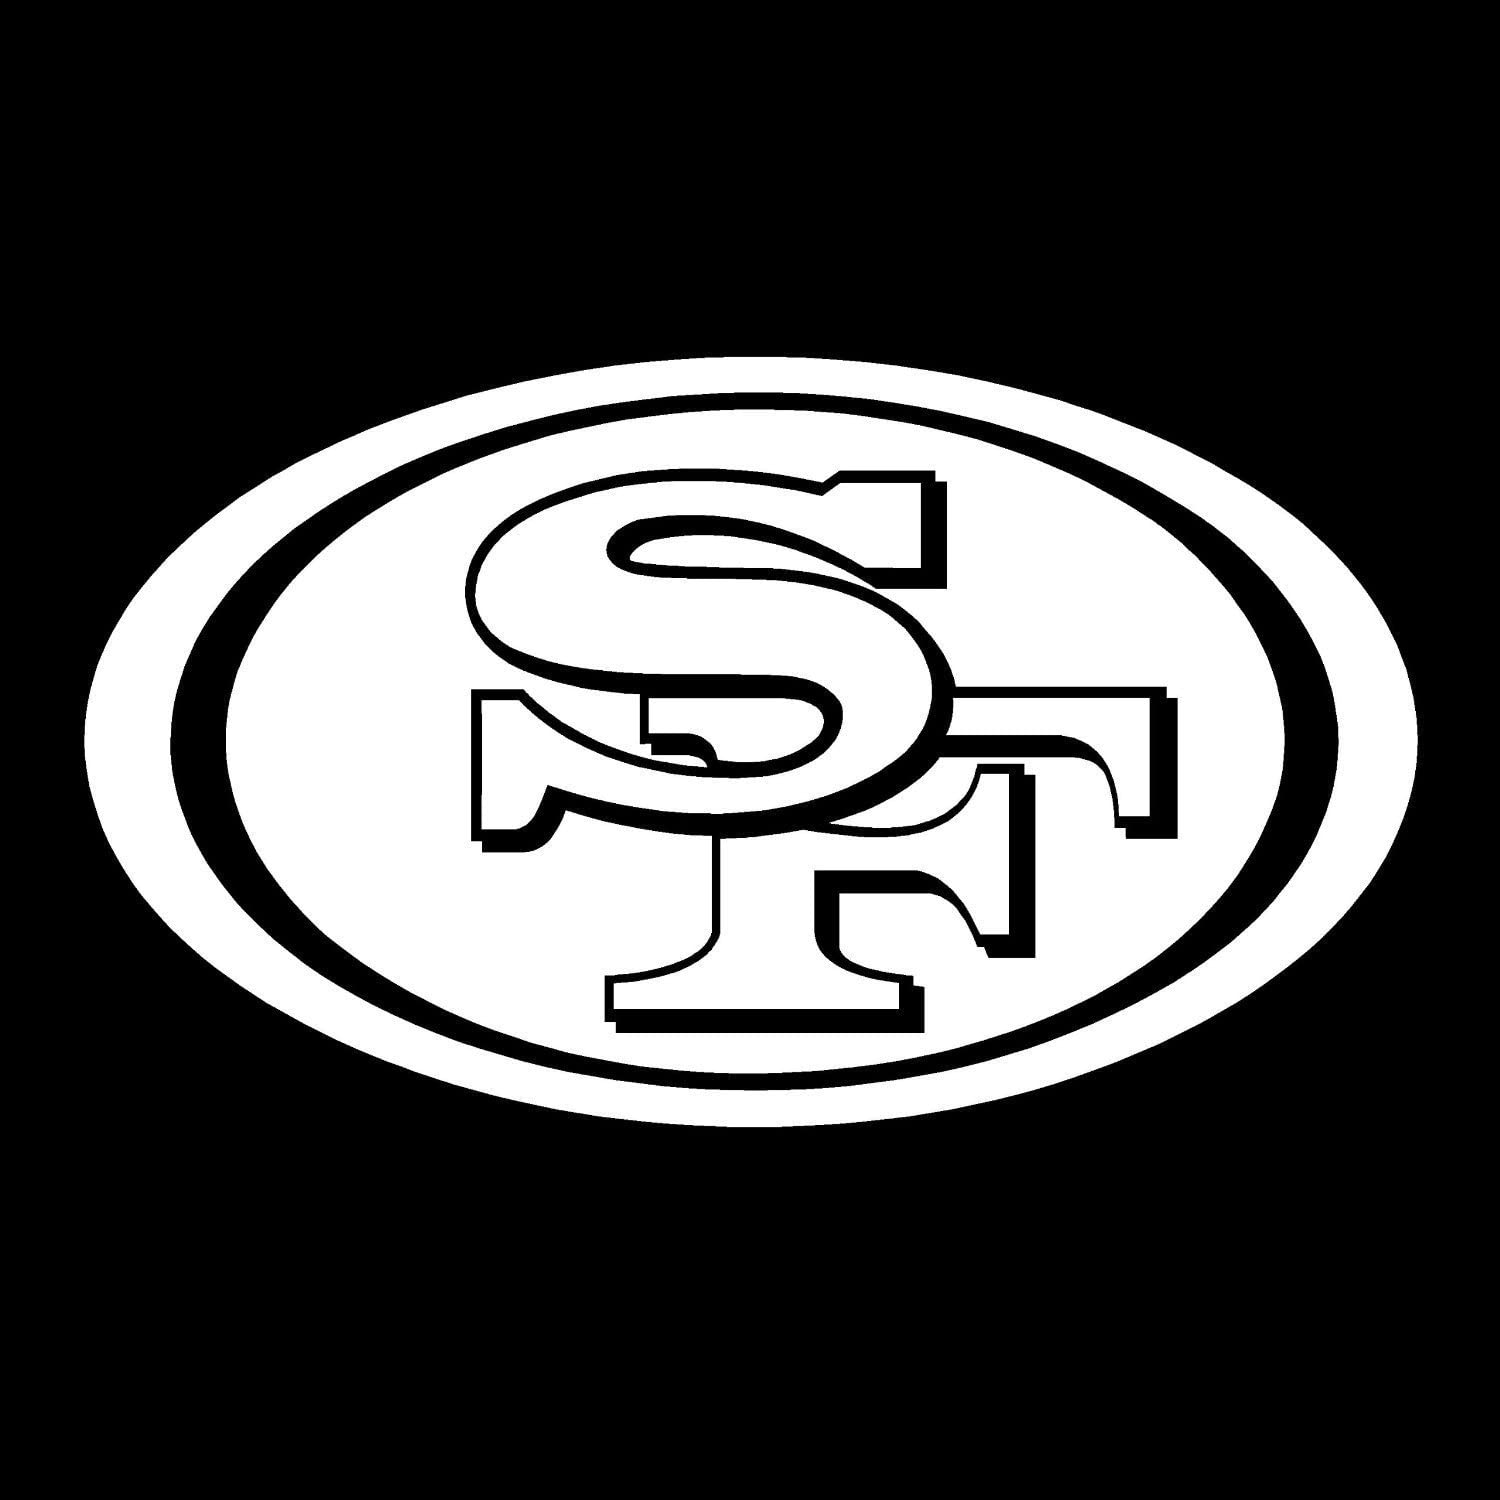 49ers logo pictures pin on hi 49ers logo pictures